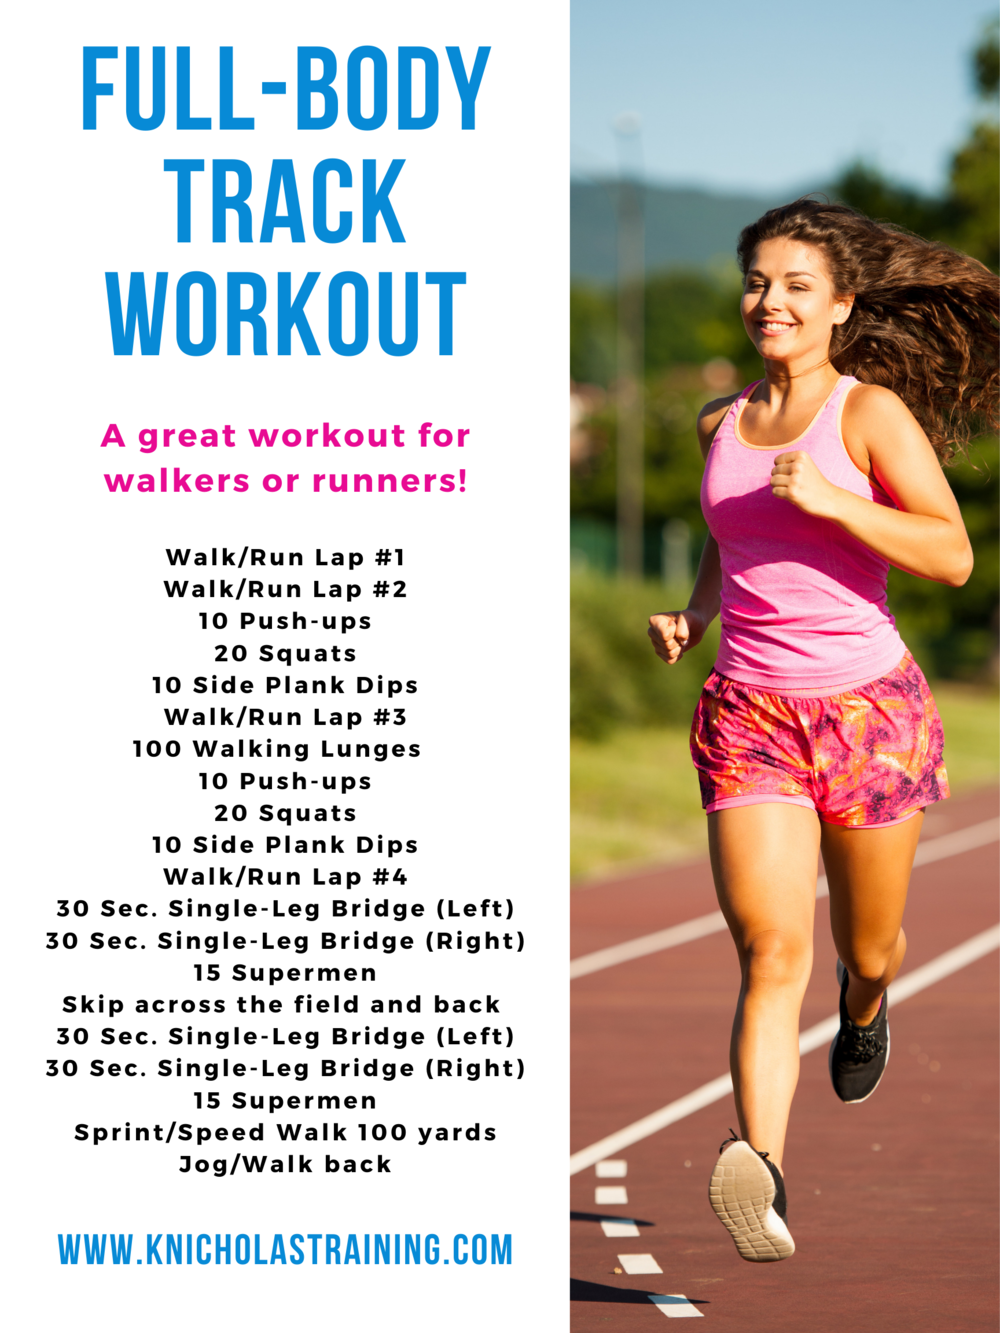 A quick and intense track workout for walkers or runners. This full-body workout requires no equipment and is great for all levels. #strengthtraining #fitness #running # walkingworkout #runningworkout